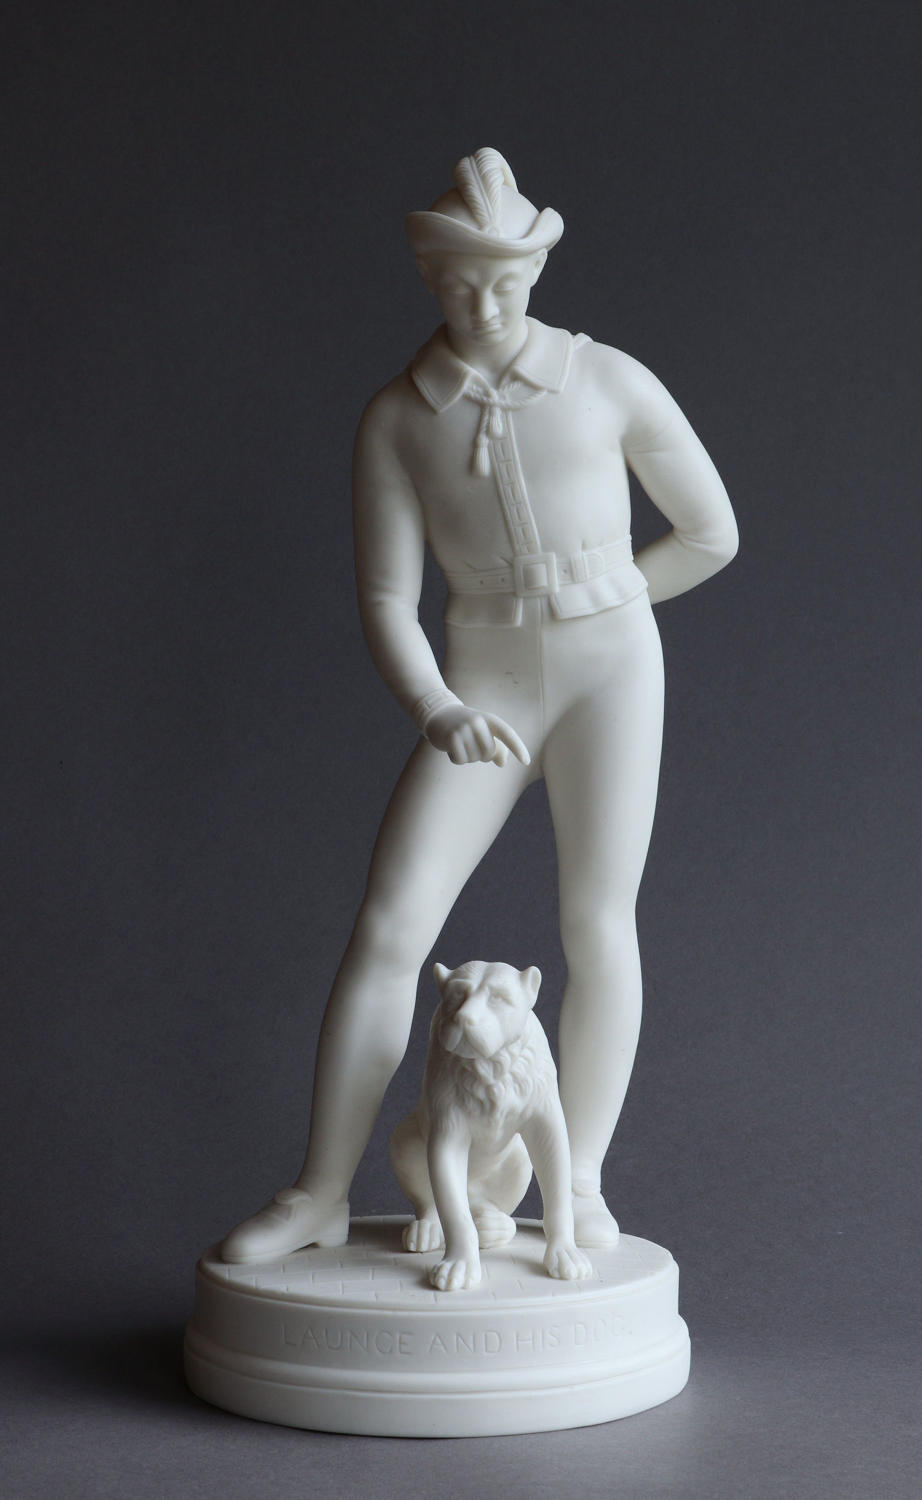 A good-sized R&L Parian figure of Launce and his dog Crab